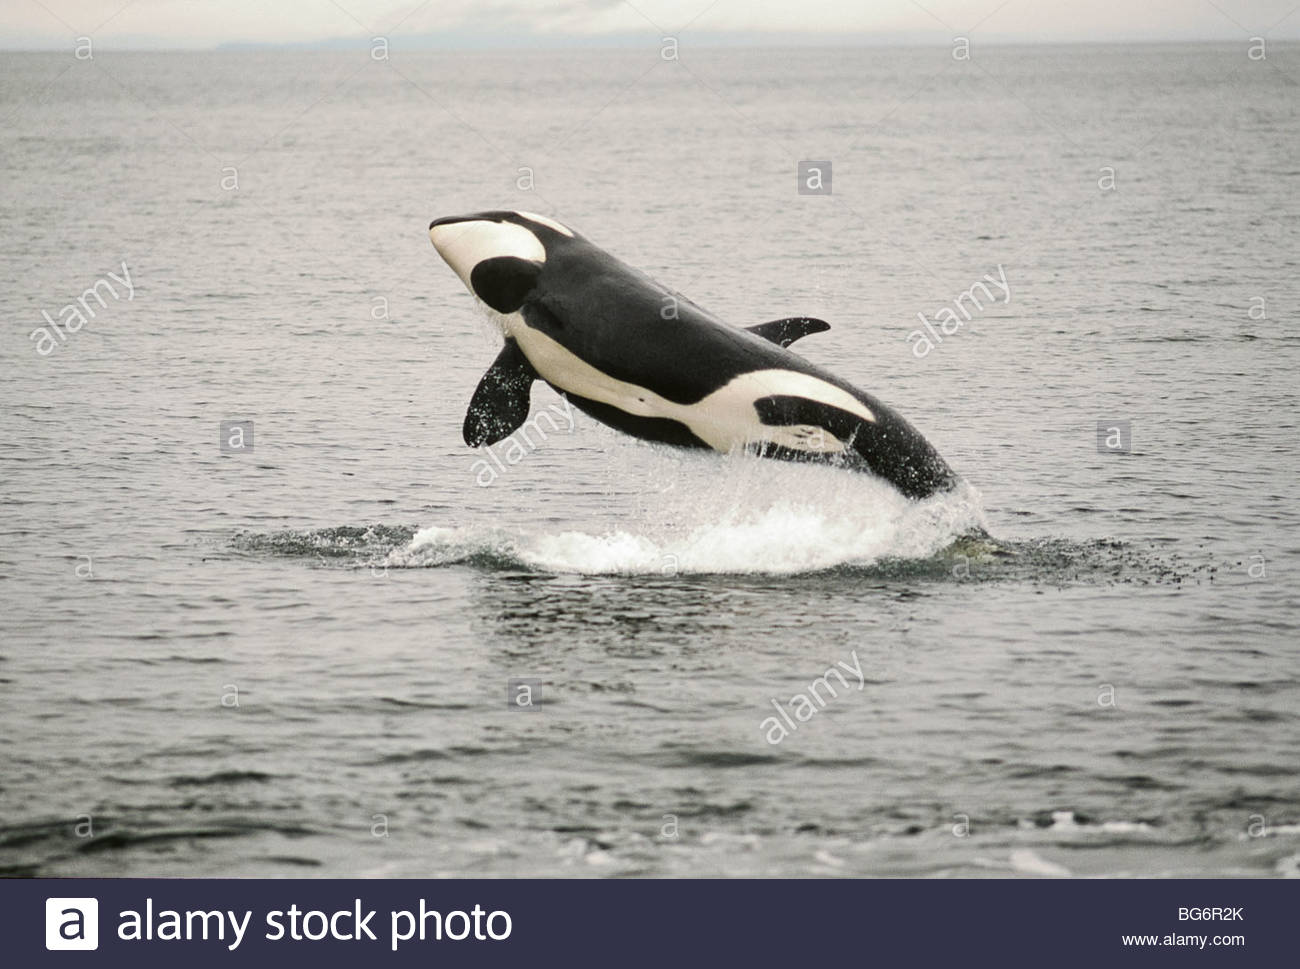 Orca Killer Whale Jumping Water Stockfotos & Orca Killer Whale ...